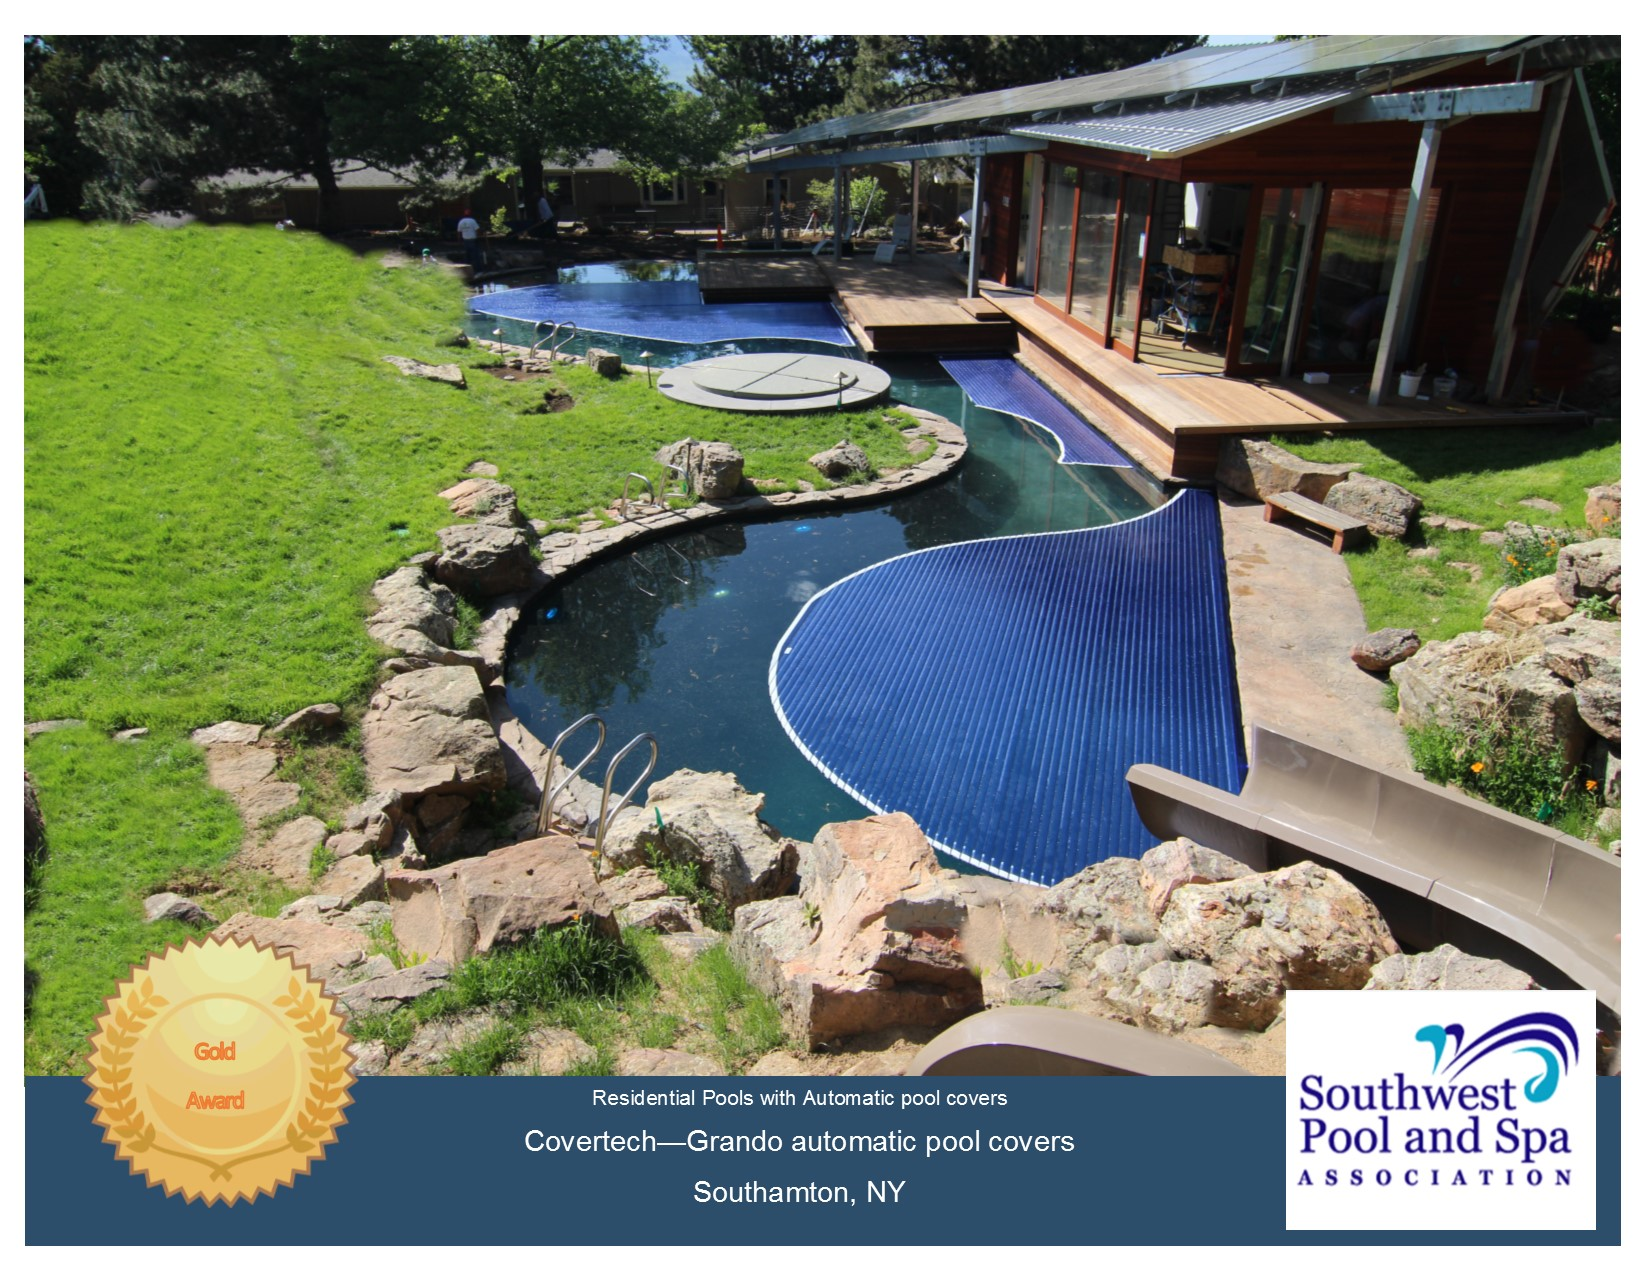 Covertech - Grando automatic rigid free form pool cover GOLD1 Award South West Pool & SPA 2016